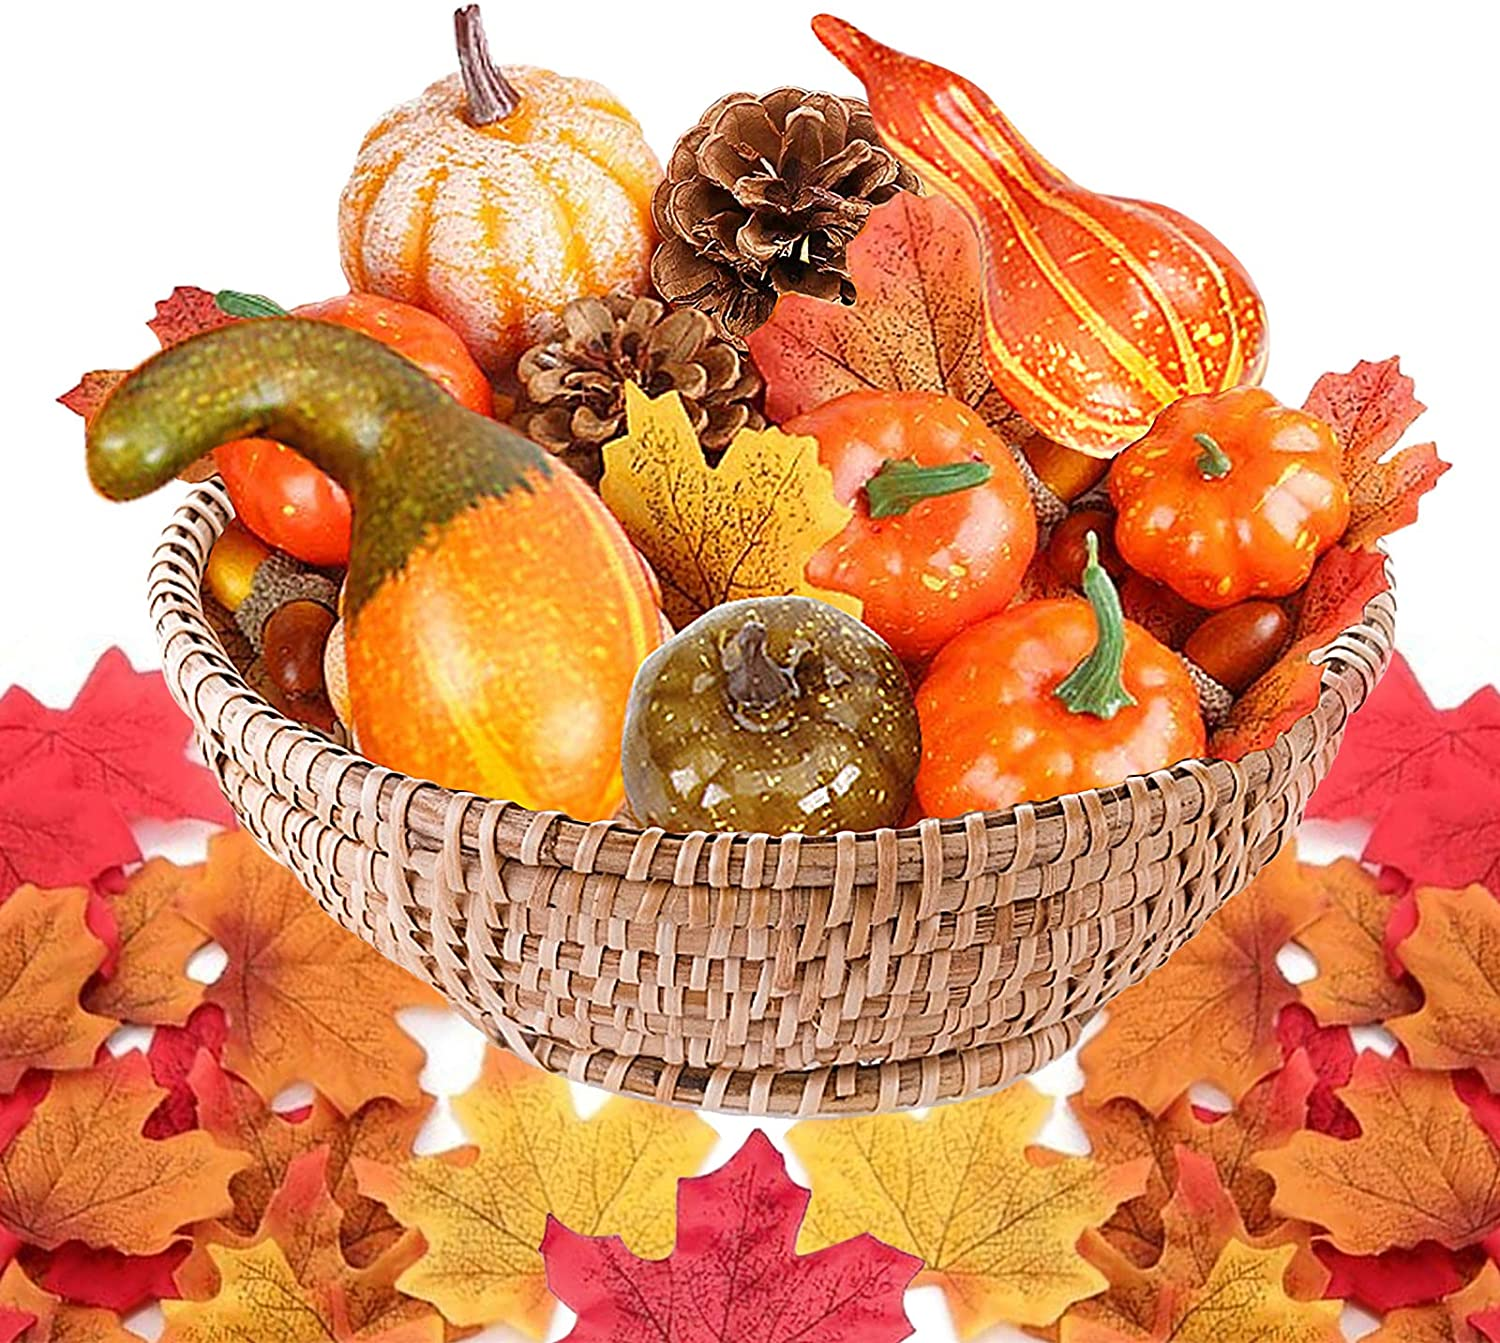 Kalolary 50Pcs Thanksgiving Artificial Pumpkins Home Harvest Decoration Set, Fake Pumpkins Gourds Maple Leaves Pine Cones Acorns